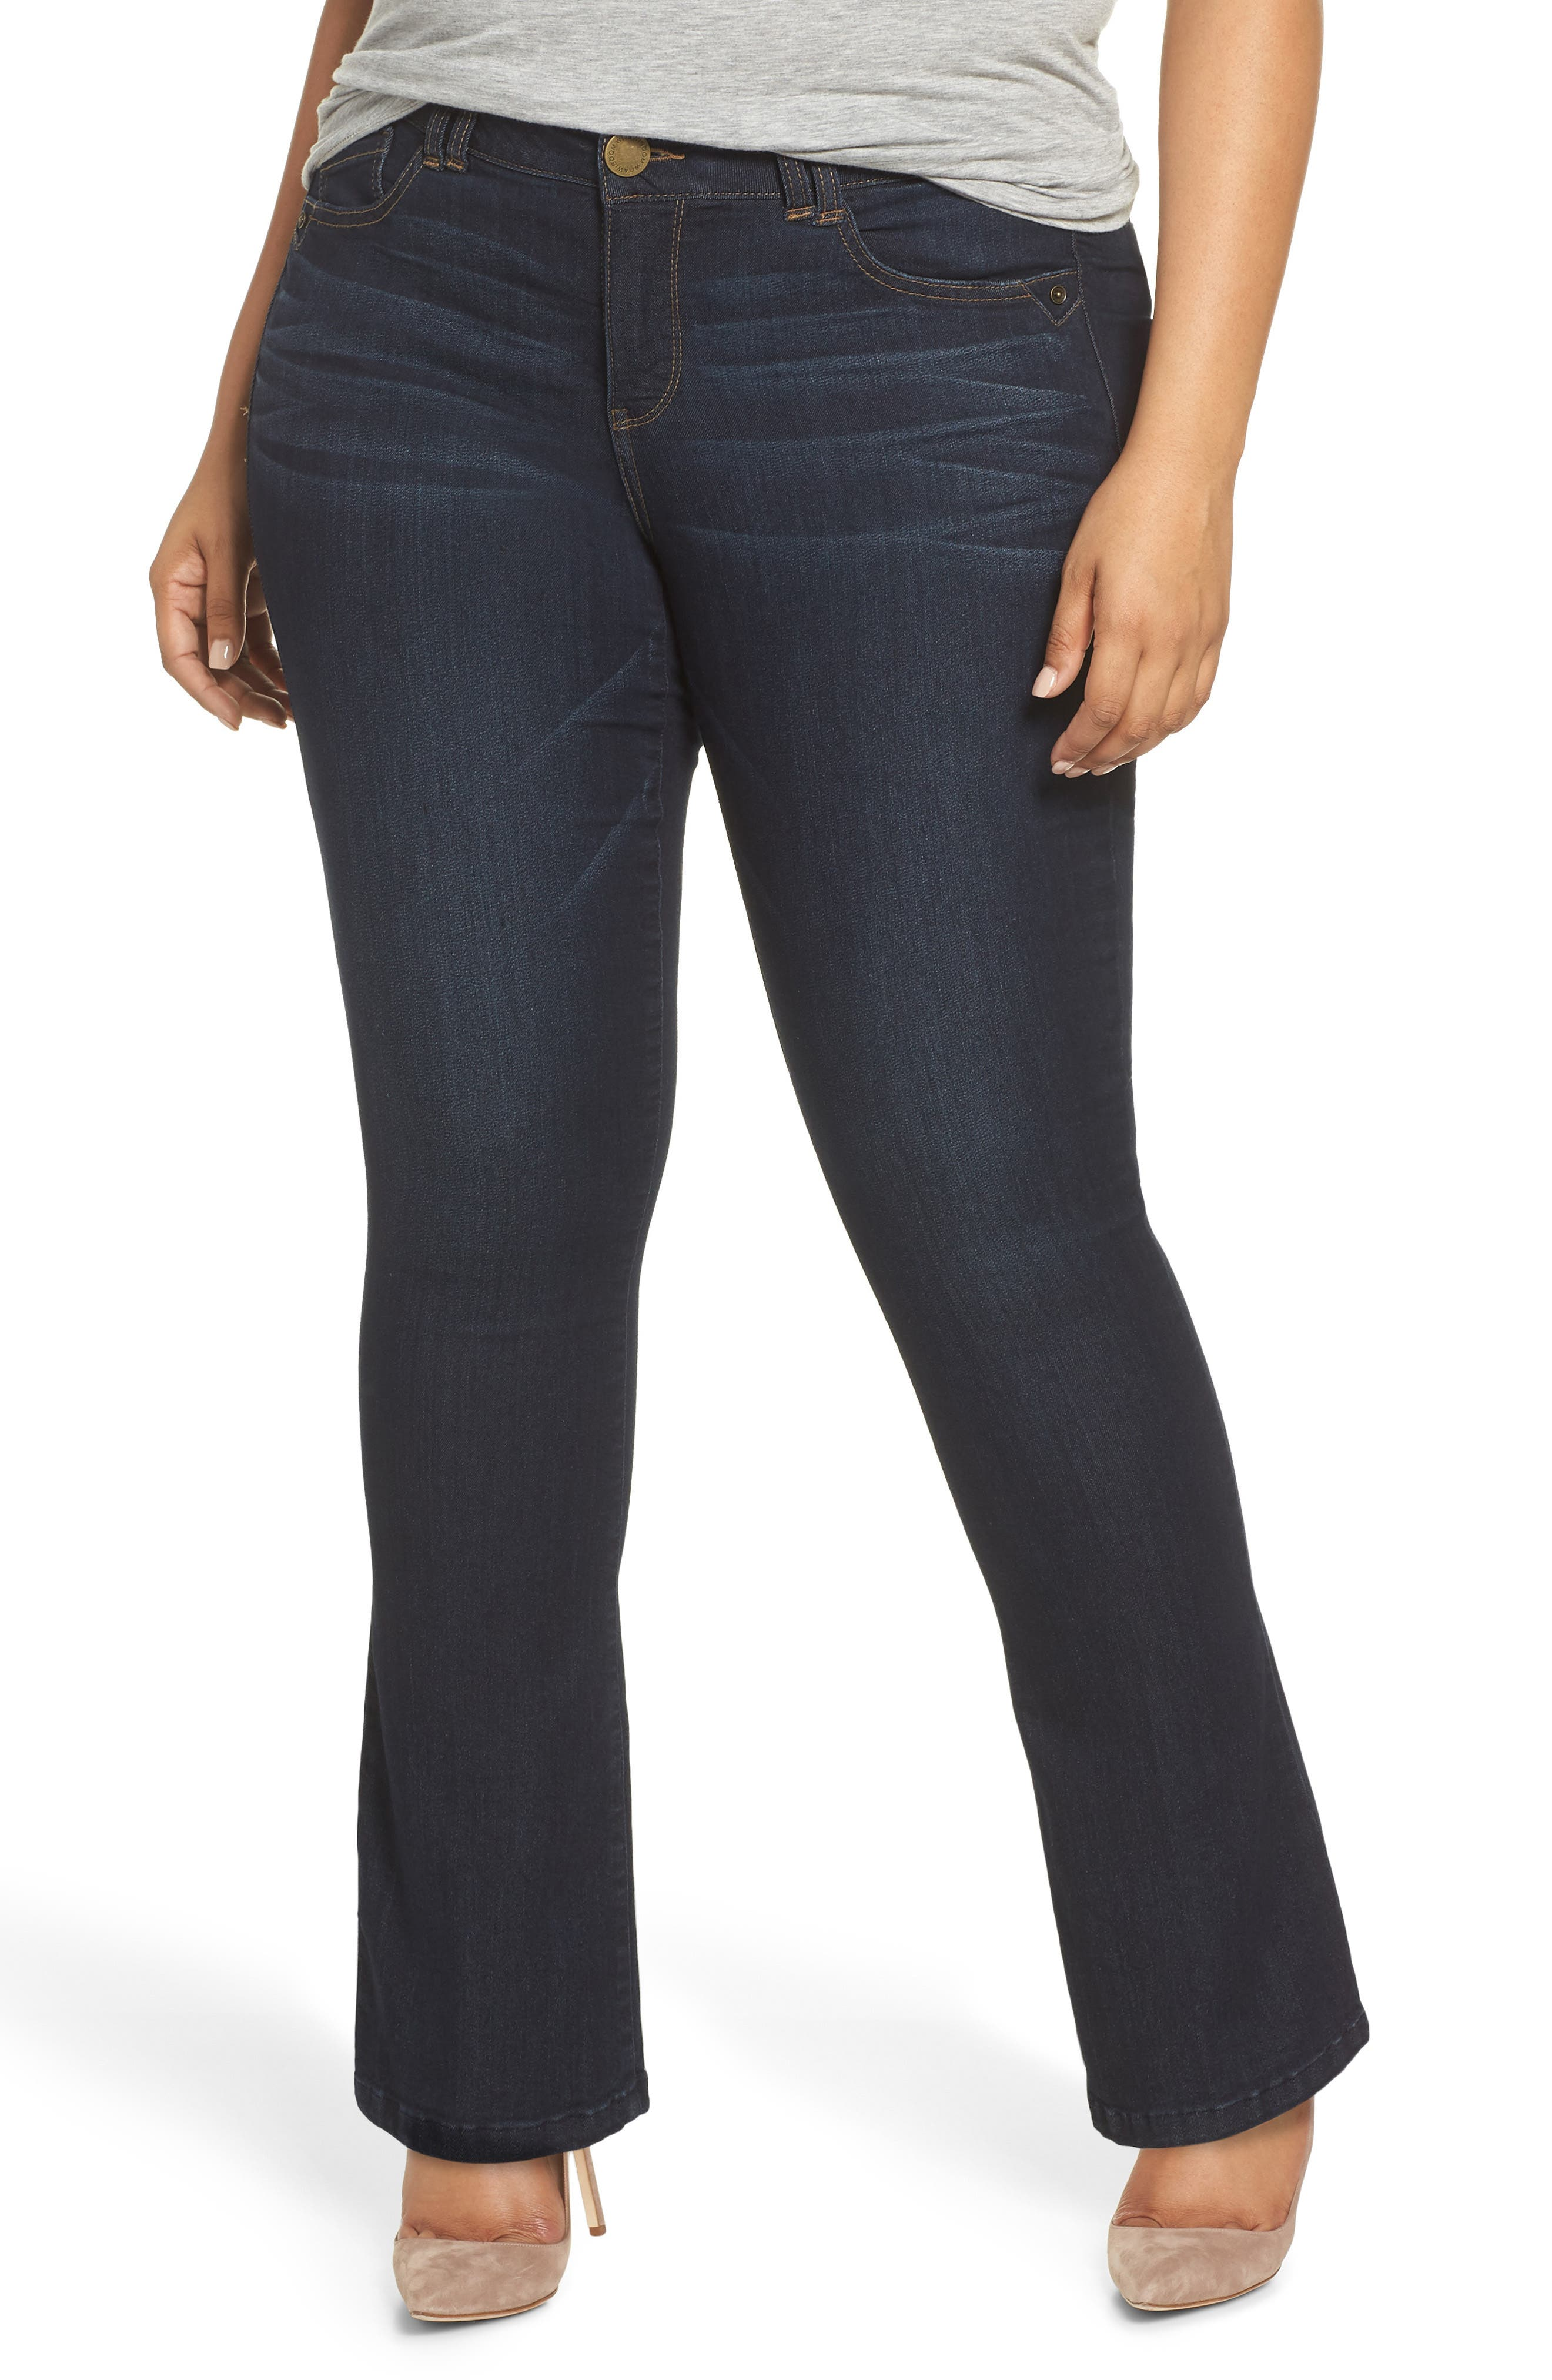 WIT & WISDOM, 'Itty Bitty' Bootcut Jeans, Main thumbnail 1, color, INDIGO